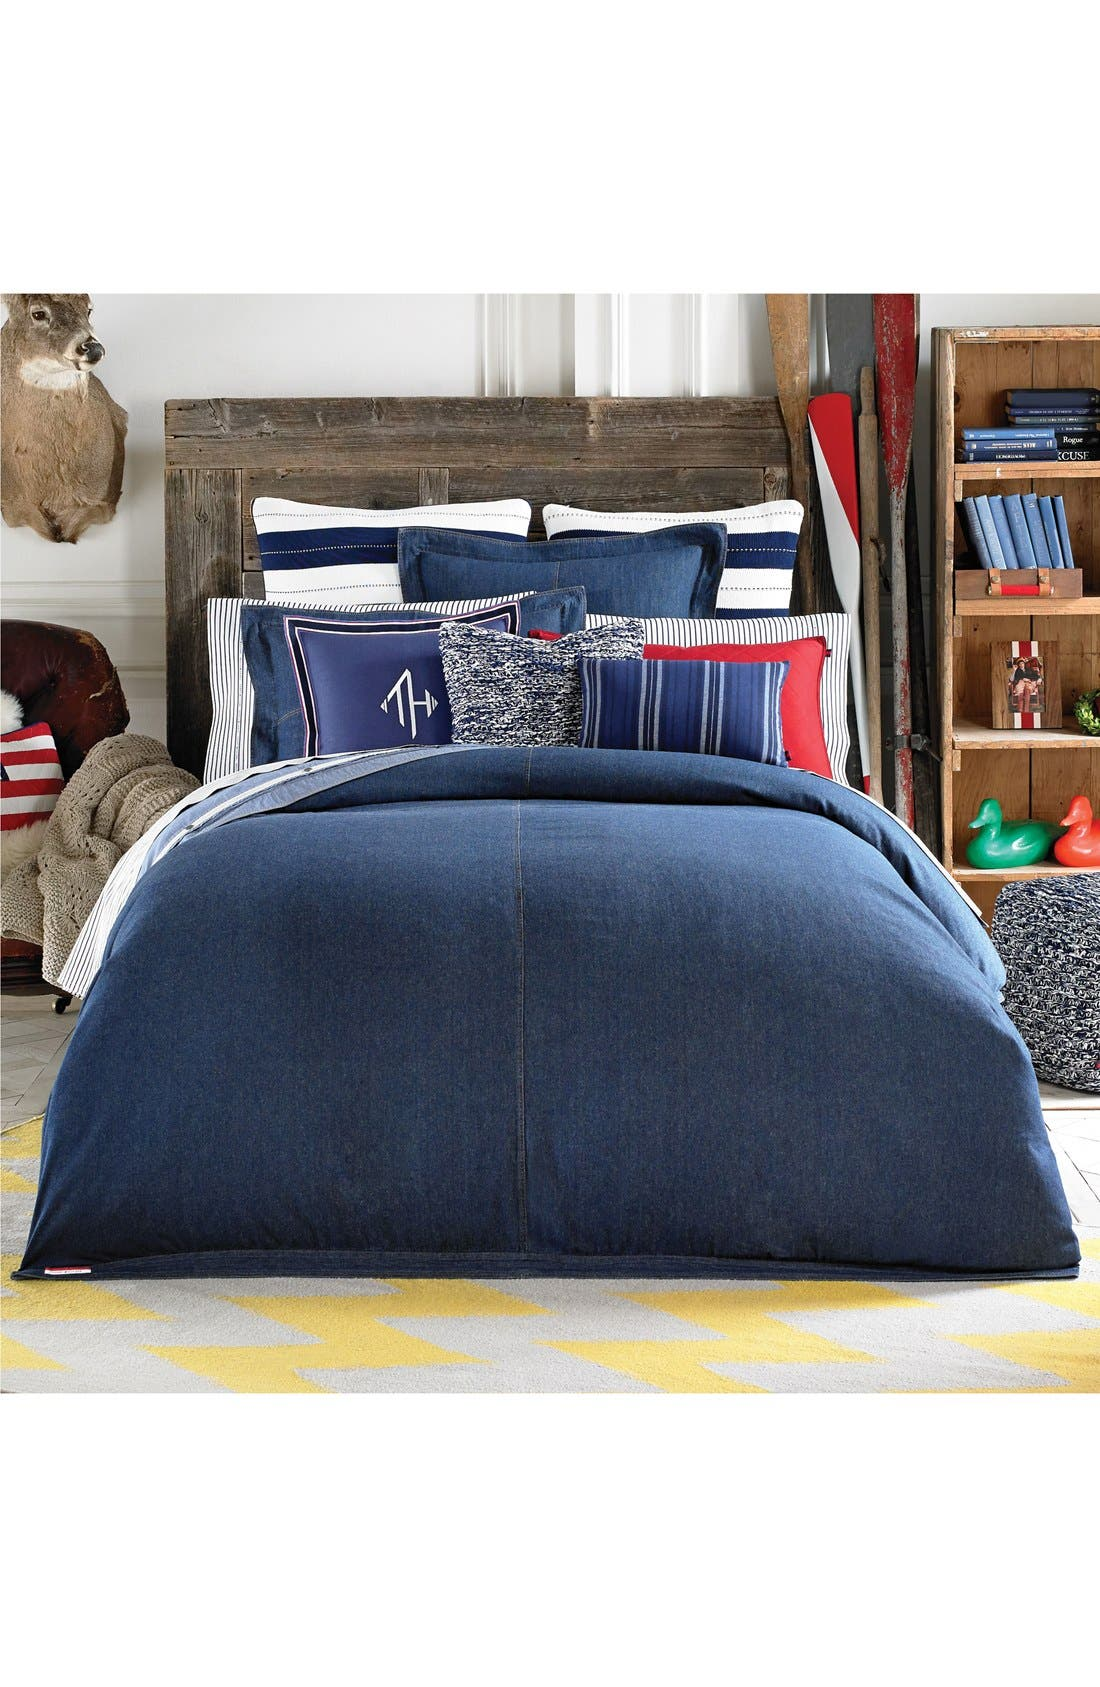 Denim Comforter,                             Main thumbnail 1, color,                             Navy